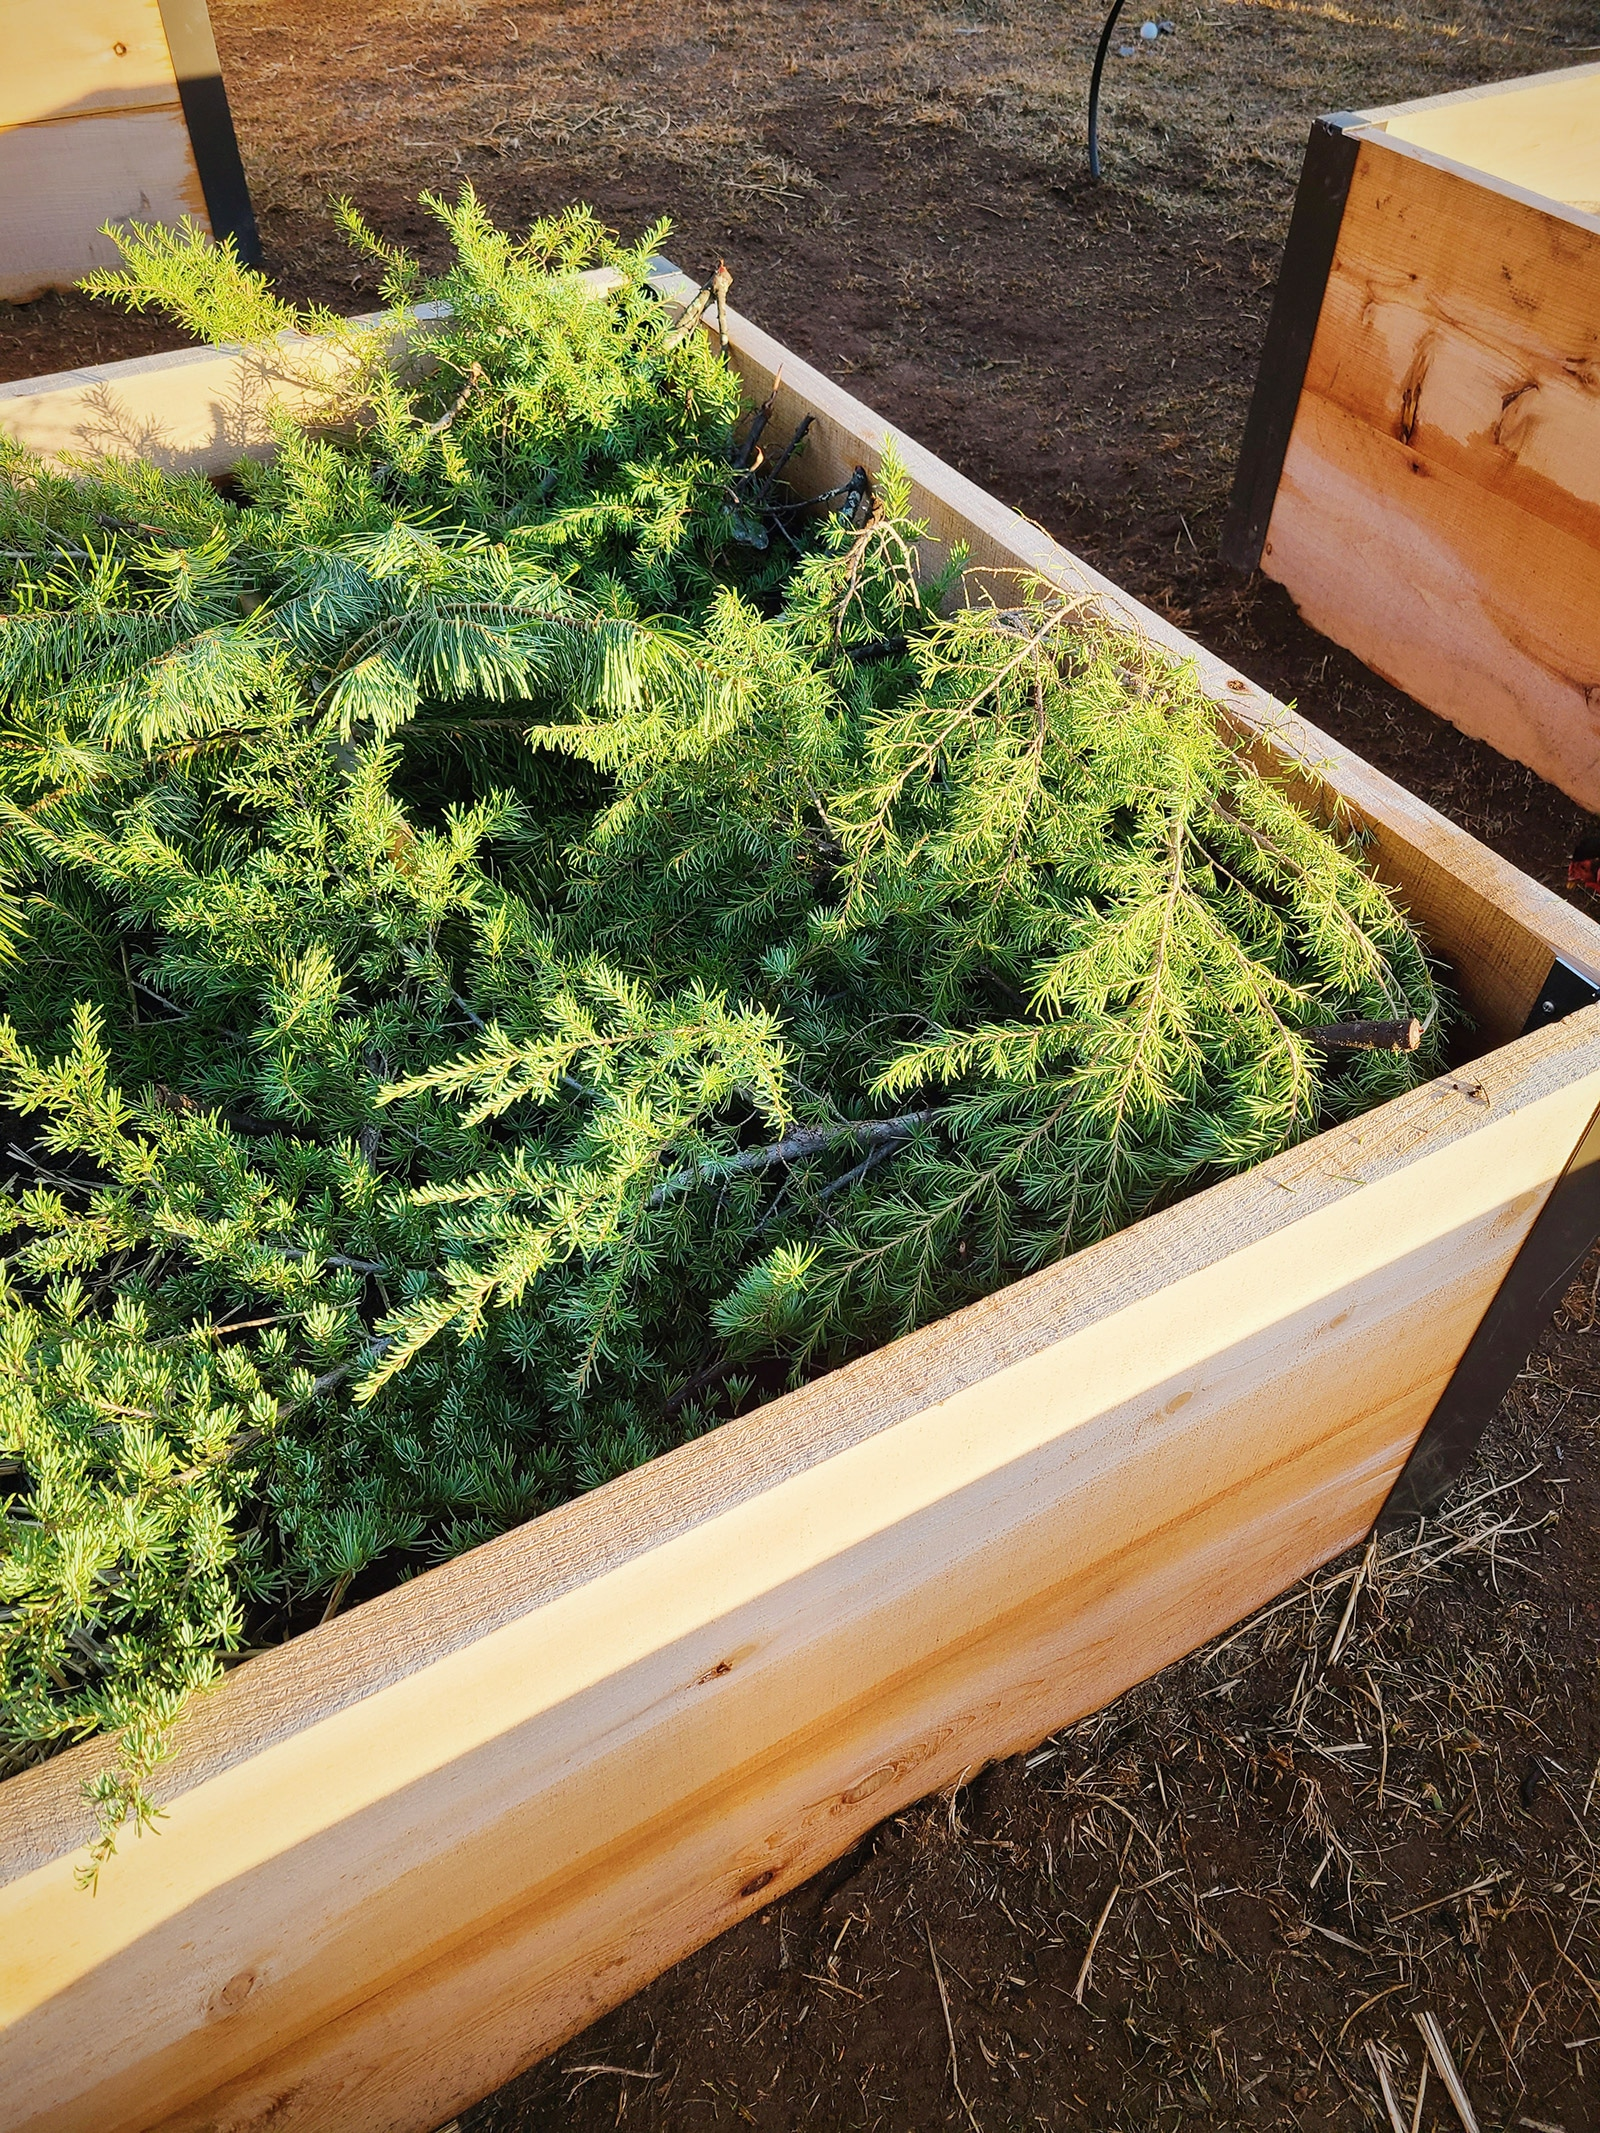 A raised bed covered in evergreen boughs used as mulch